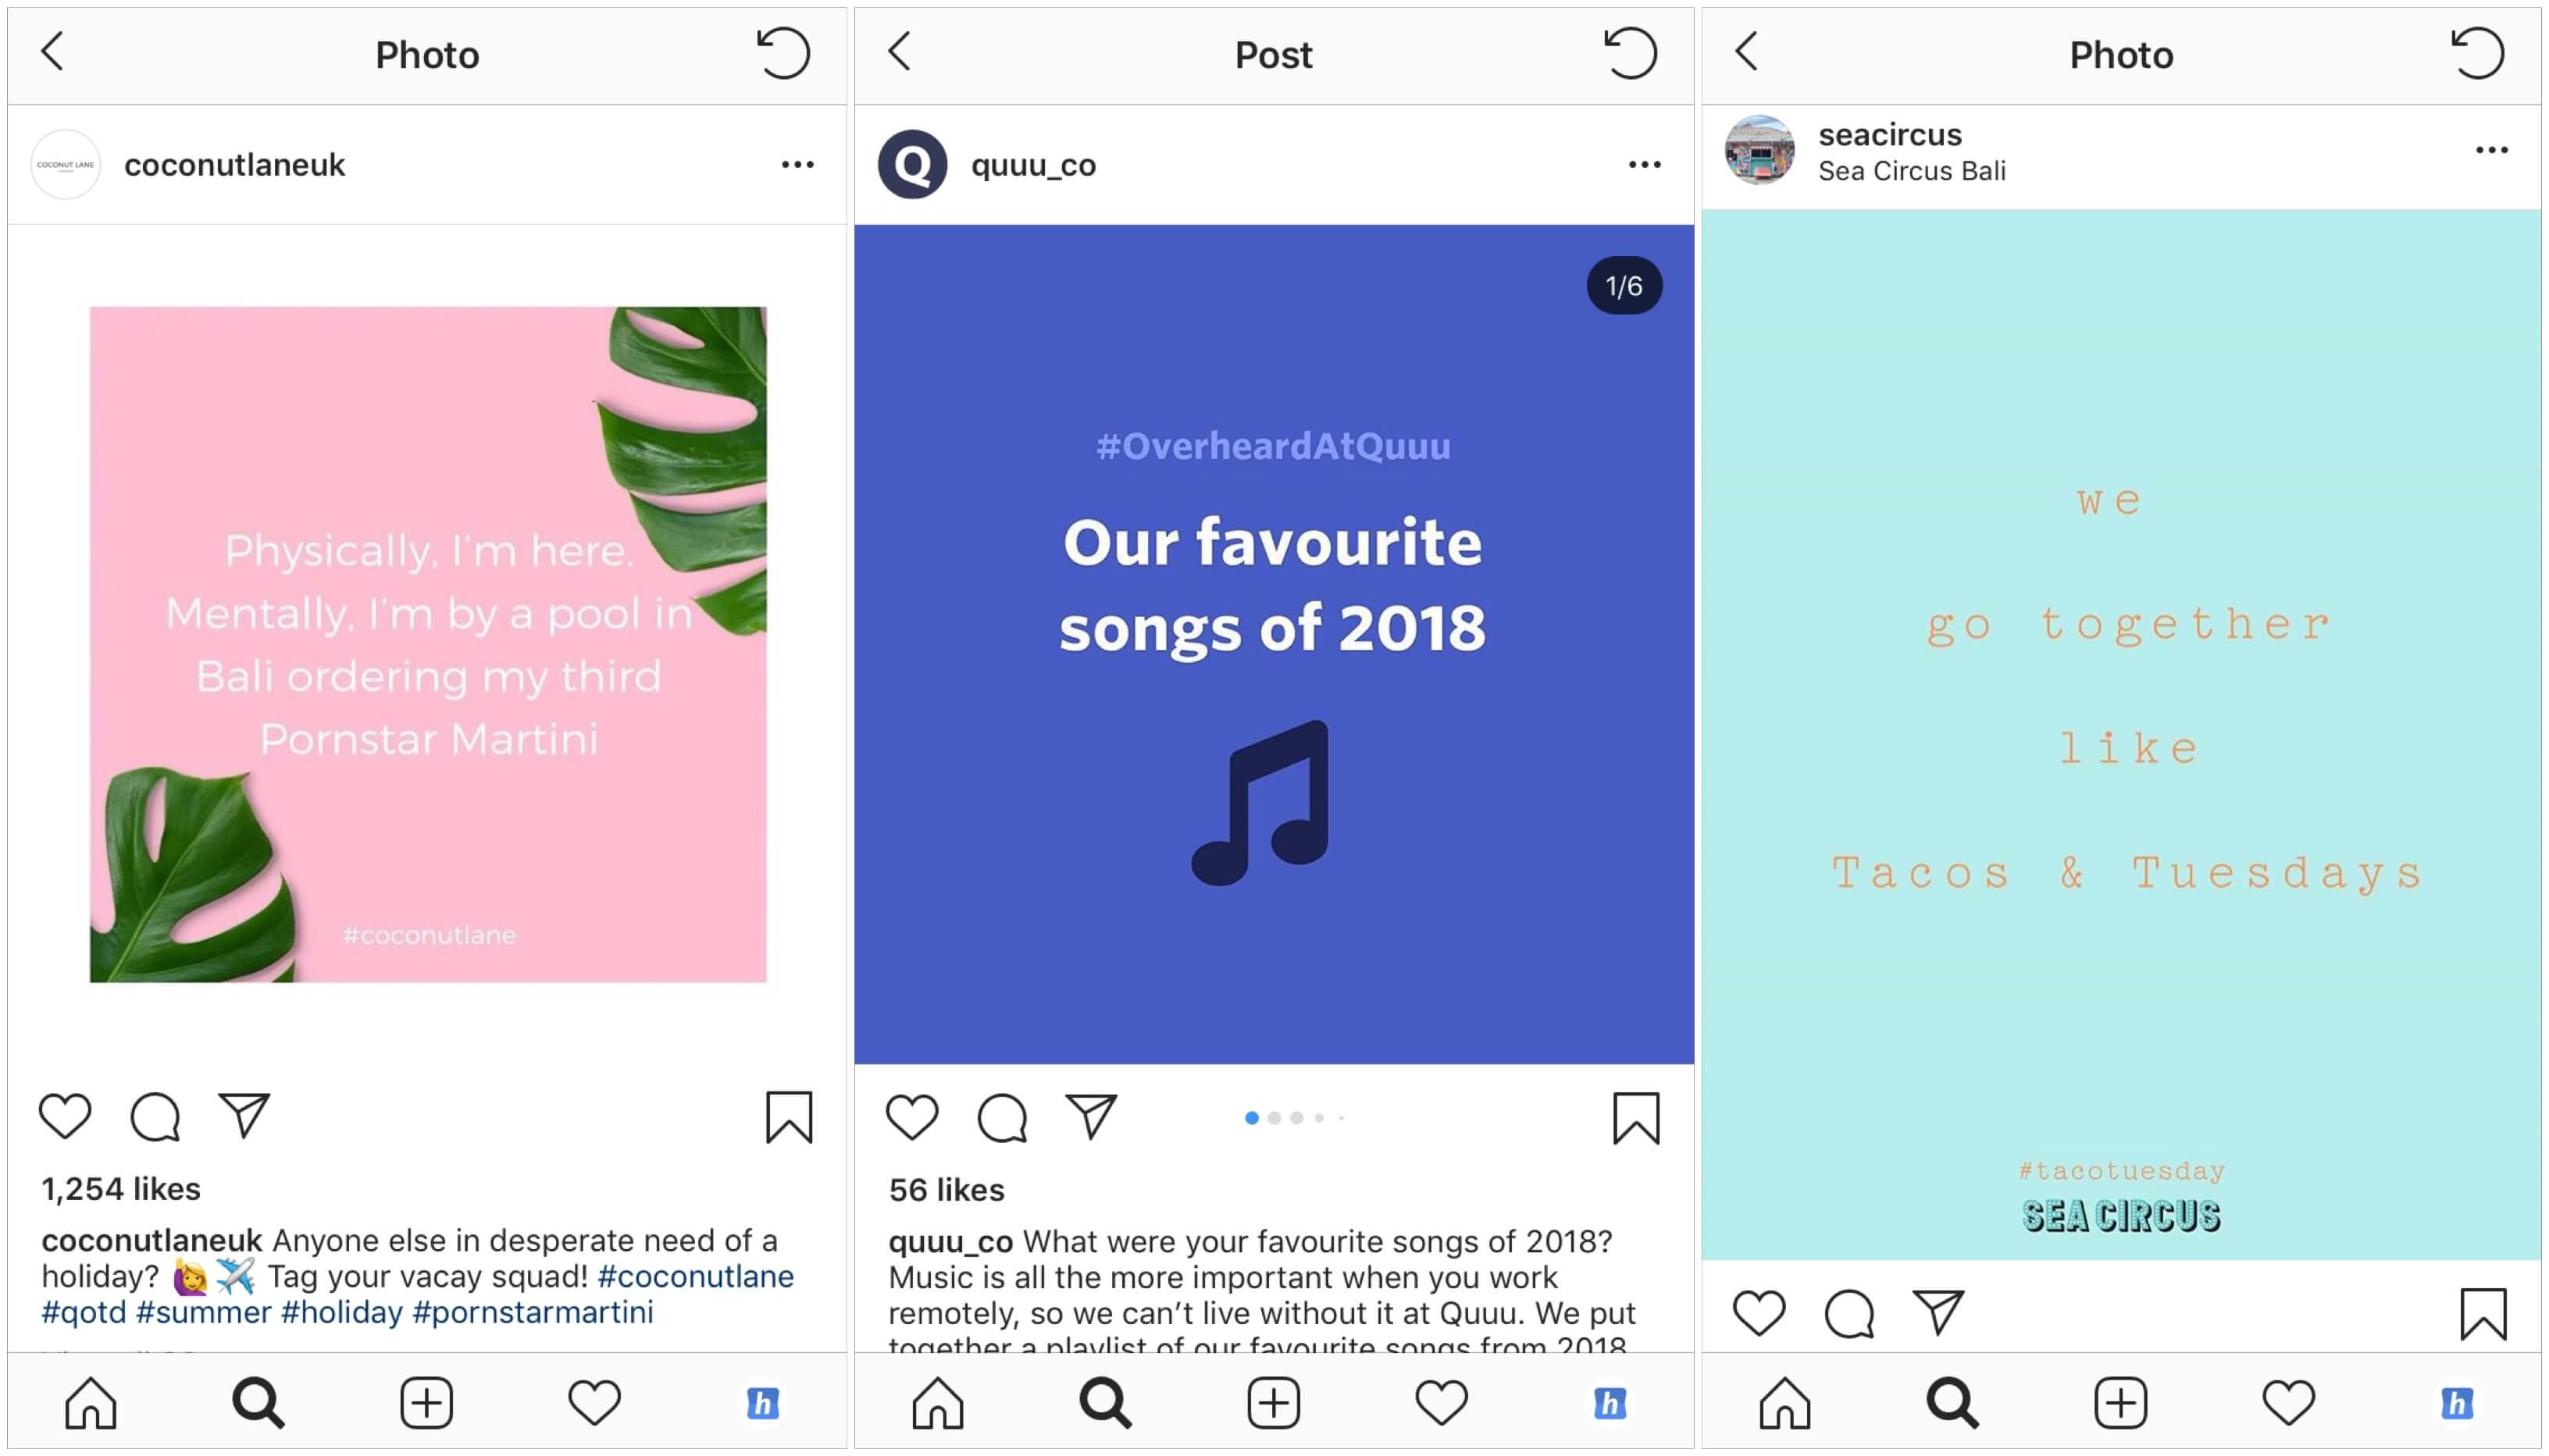 7 Instagram Post Ideas The Killer Content That Works